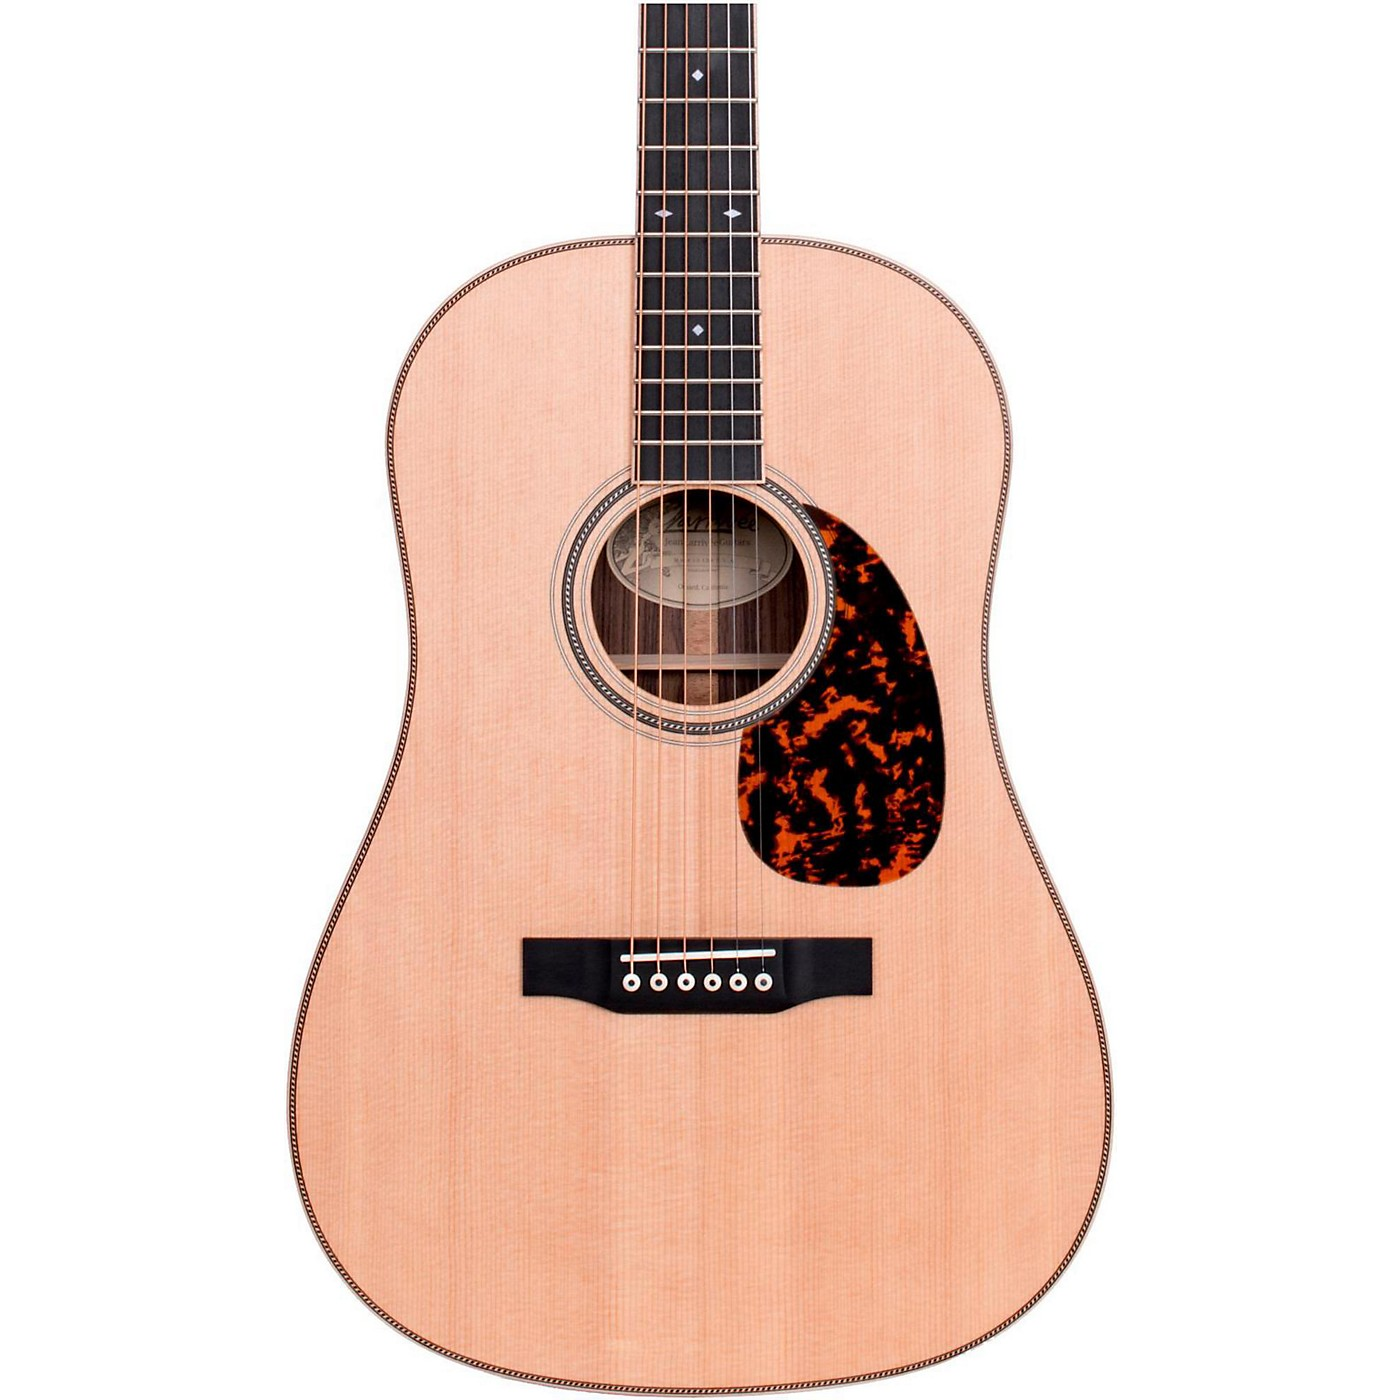 Larrivee SD-40 RWA Slope Shoulder Acoustic Guitar thumbnail